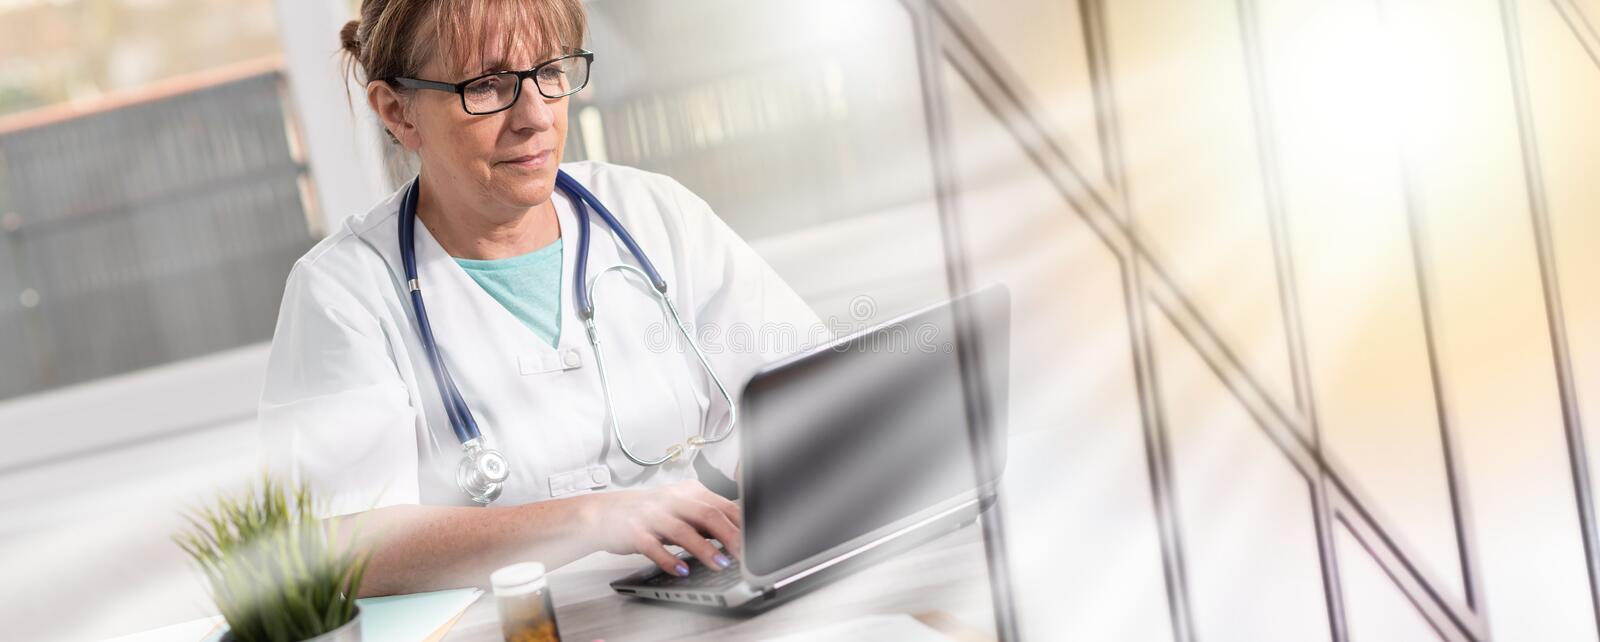 Female doctor using laptop; multiple exposure royalty free stock photos